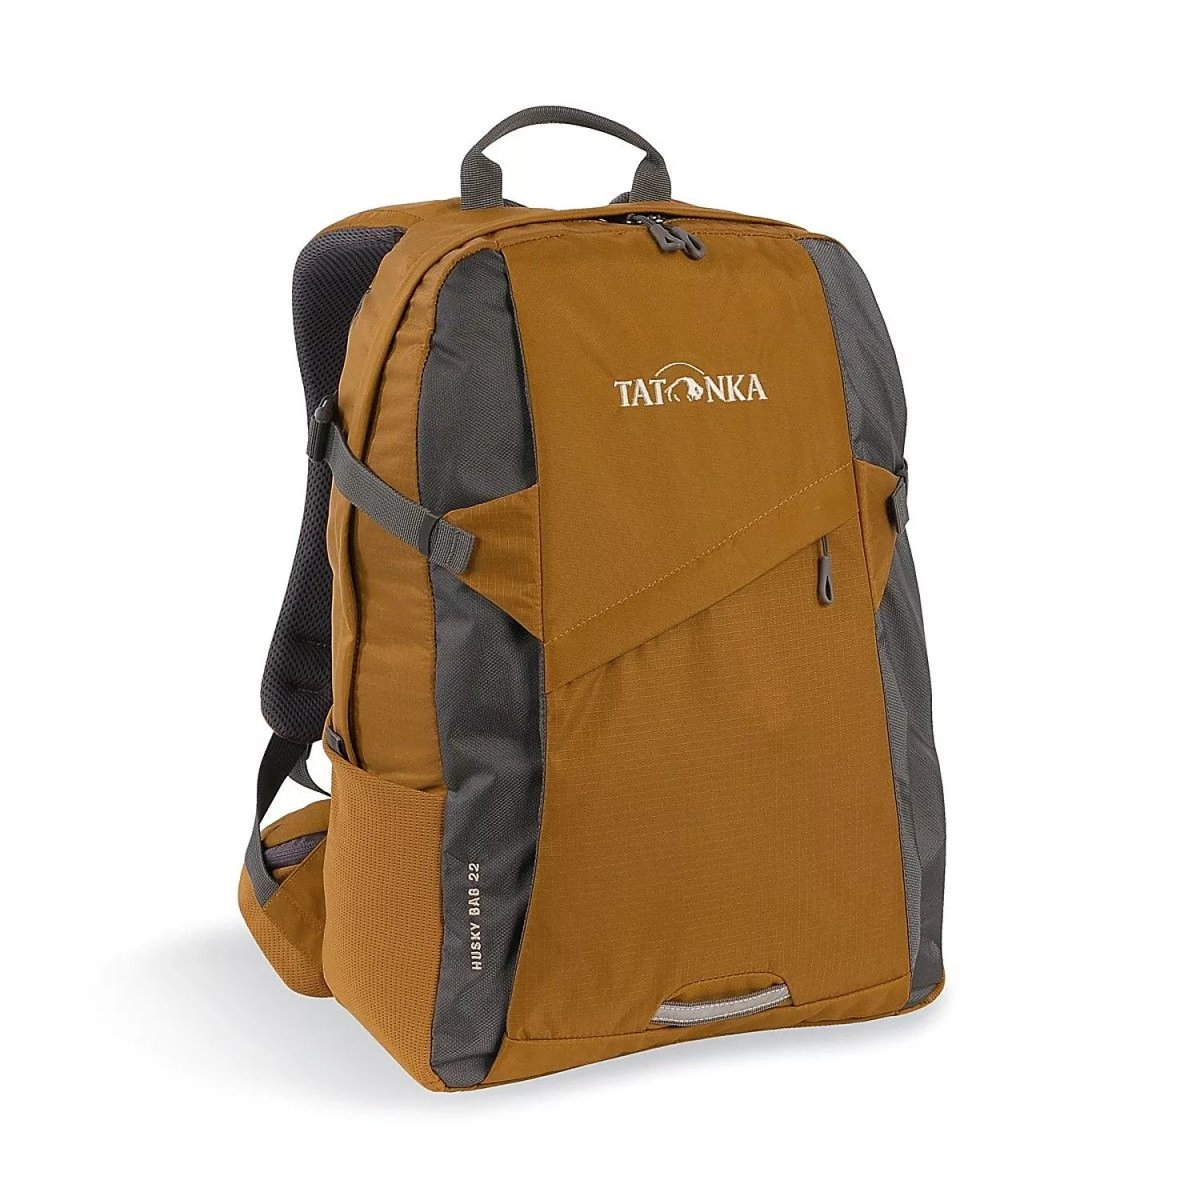 Рюкзак Tatonka Husky bag 22 (Bronze) TAT 1628.031